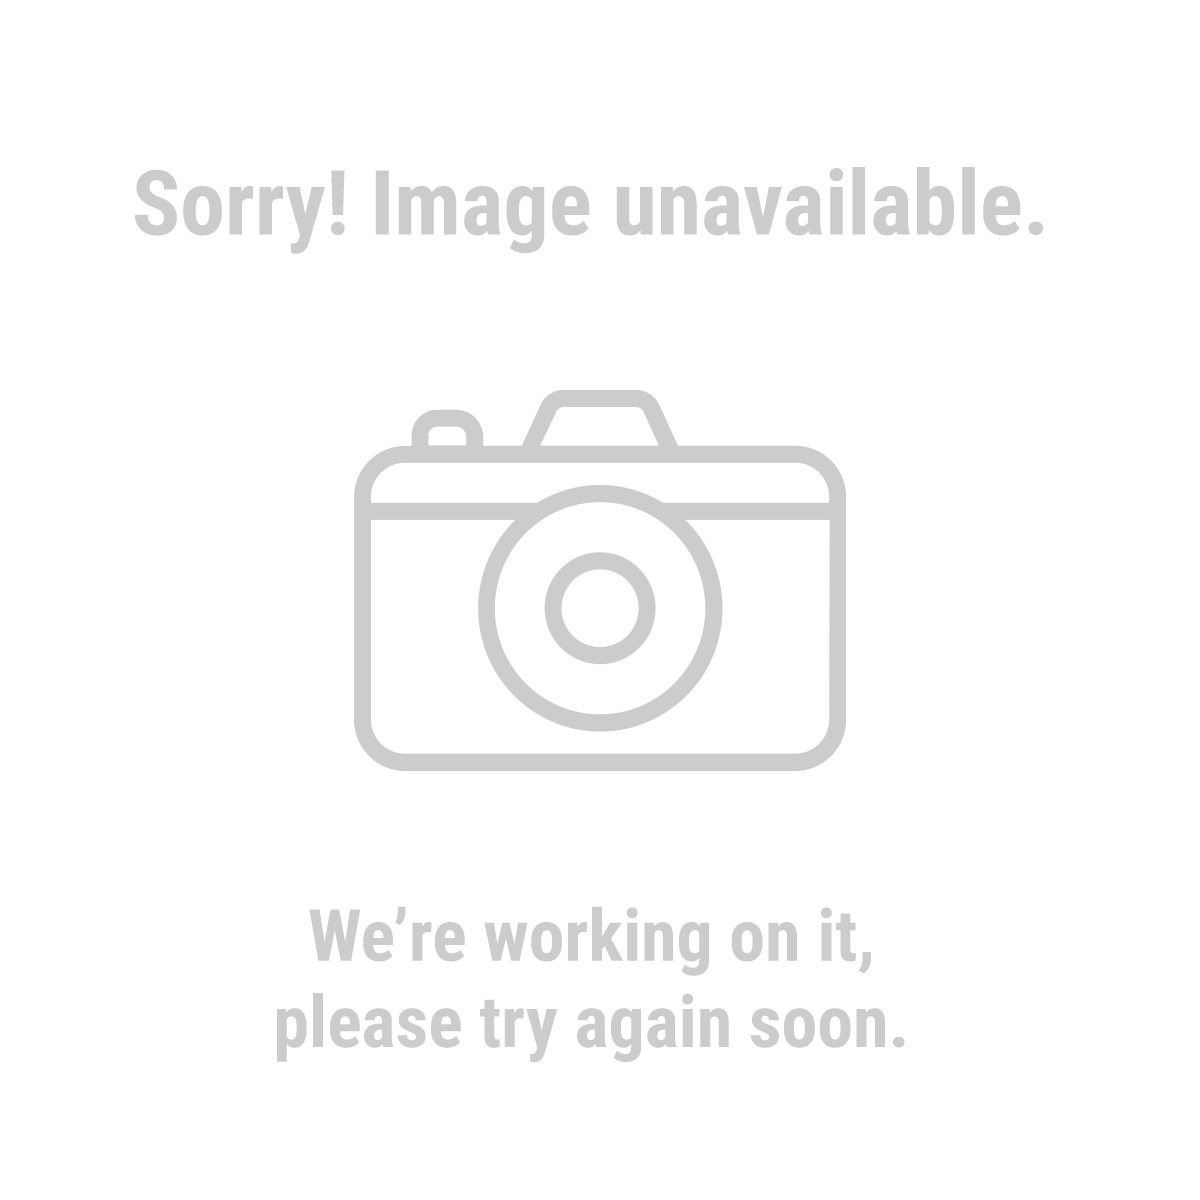 HFT 65192 Threadlocker, No. 42, 10 mL Medium Strength